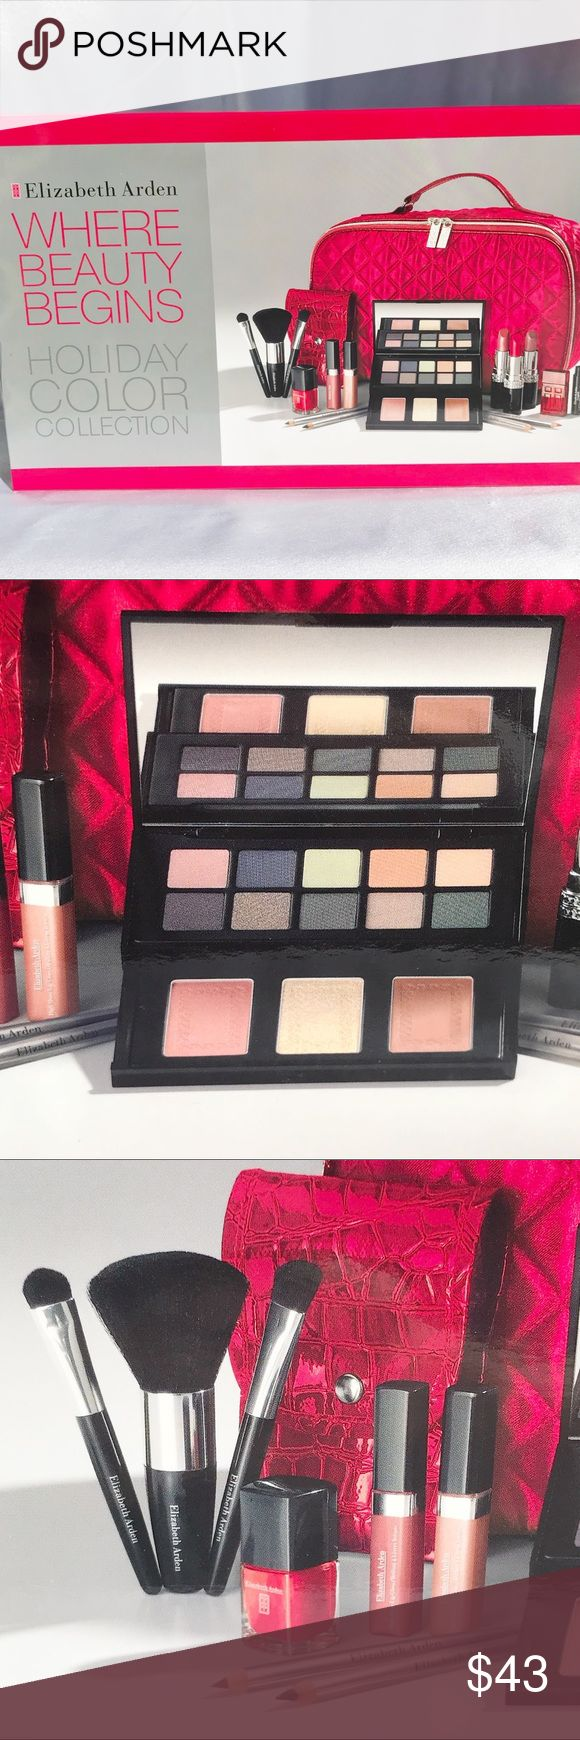 Elizabeth Arden Holiday Color Collection New in box HUGE Elizabeth Arden Where Beauty Begins Makeup Set includes the following: Deluxe palette w/ 10 shadows, 2 blushes, & 1 powder 3 Pc brush set & bag 3 lipsticks 2 lipglosses  2 eye pencils  2 lip pencils Nail polish Red Door perfume 0.16oz Mascara Red quilted satin bag Sephora Makeup